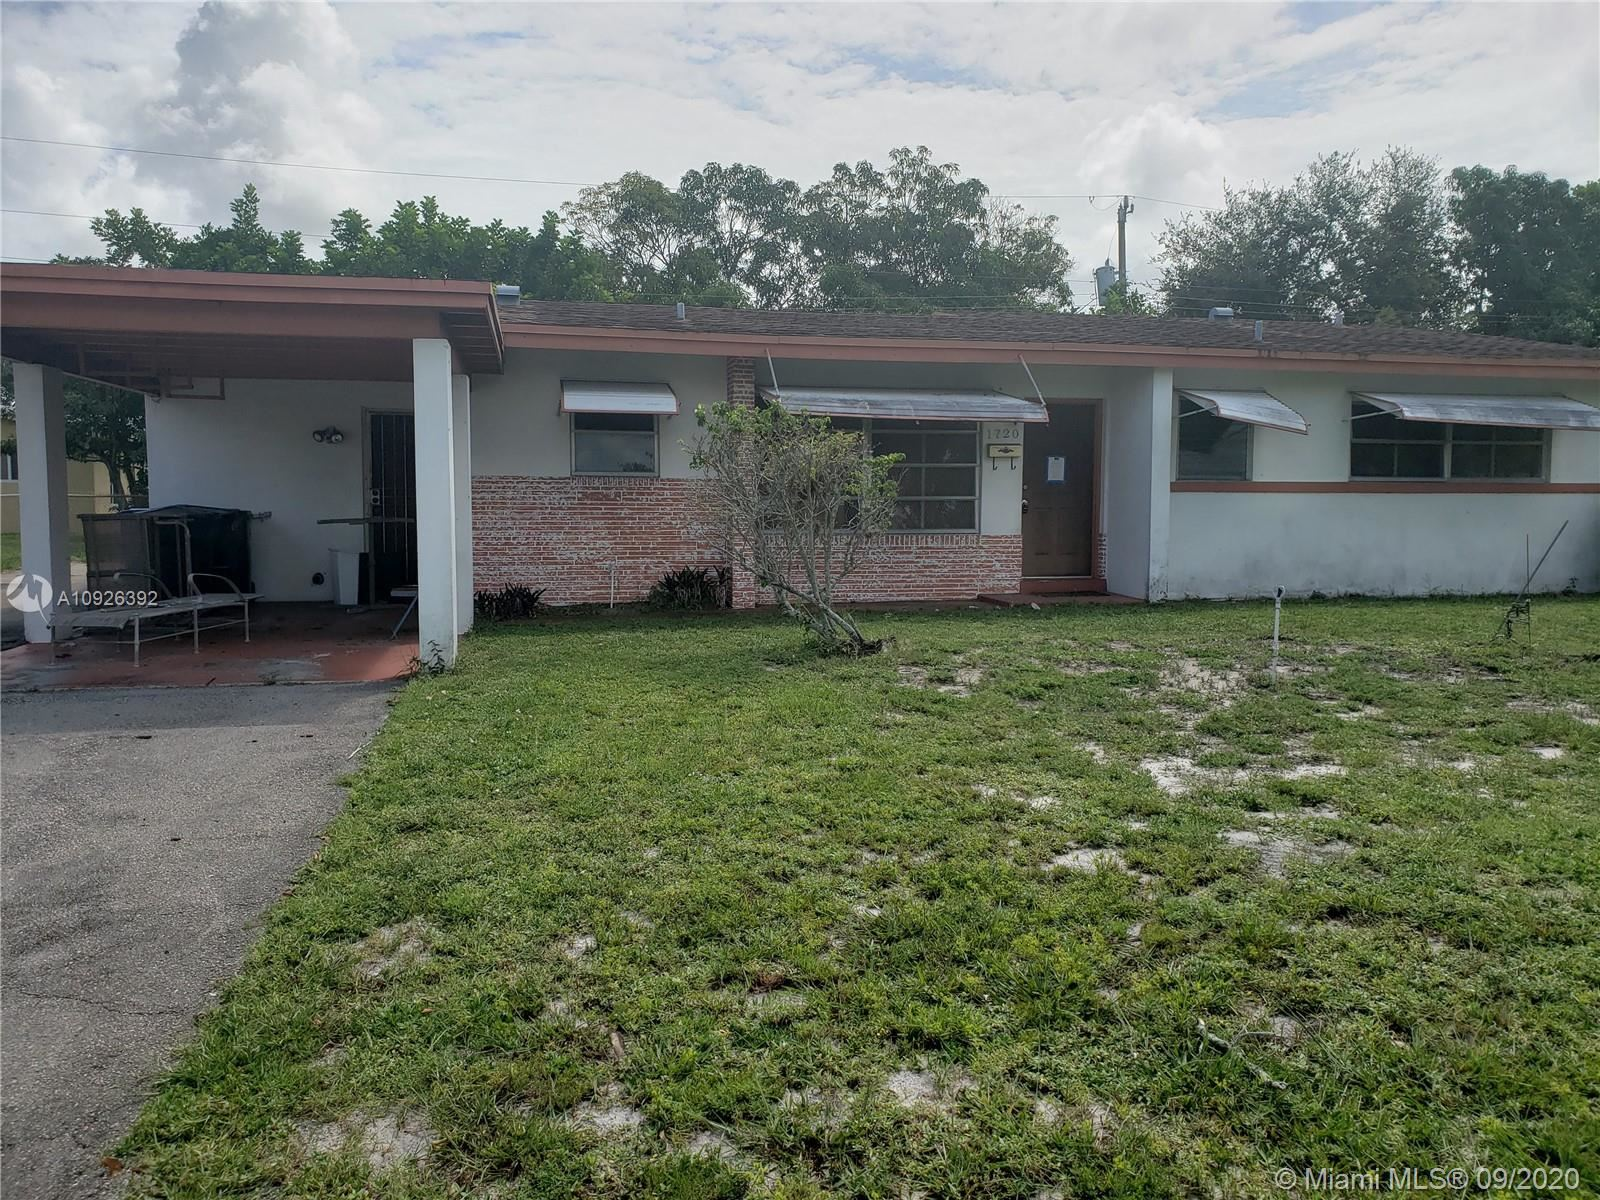 1720 NW 28th Ave, Fort Lauderdale, FL 33311 - #: A10926392